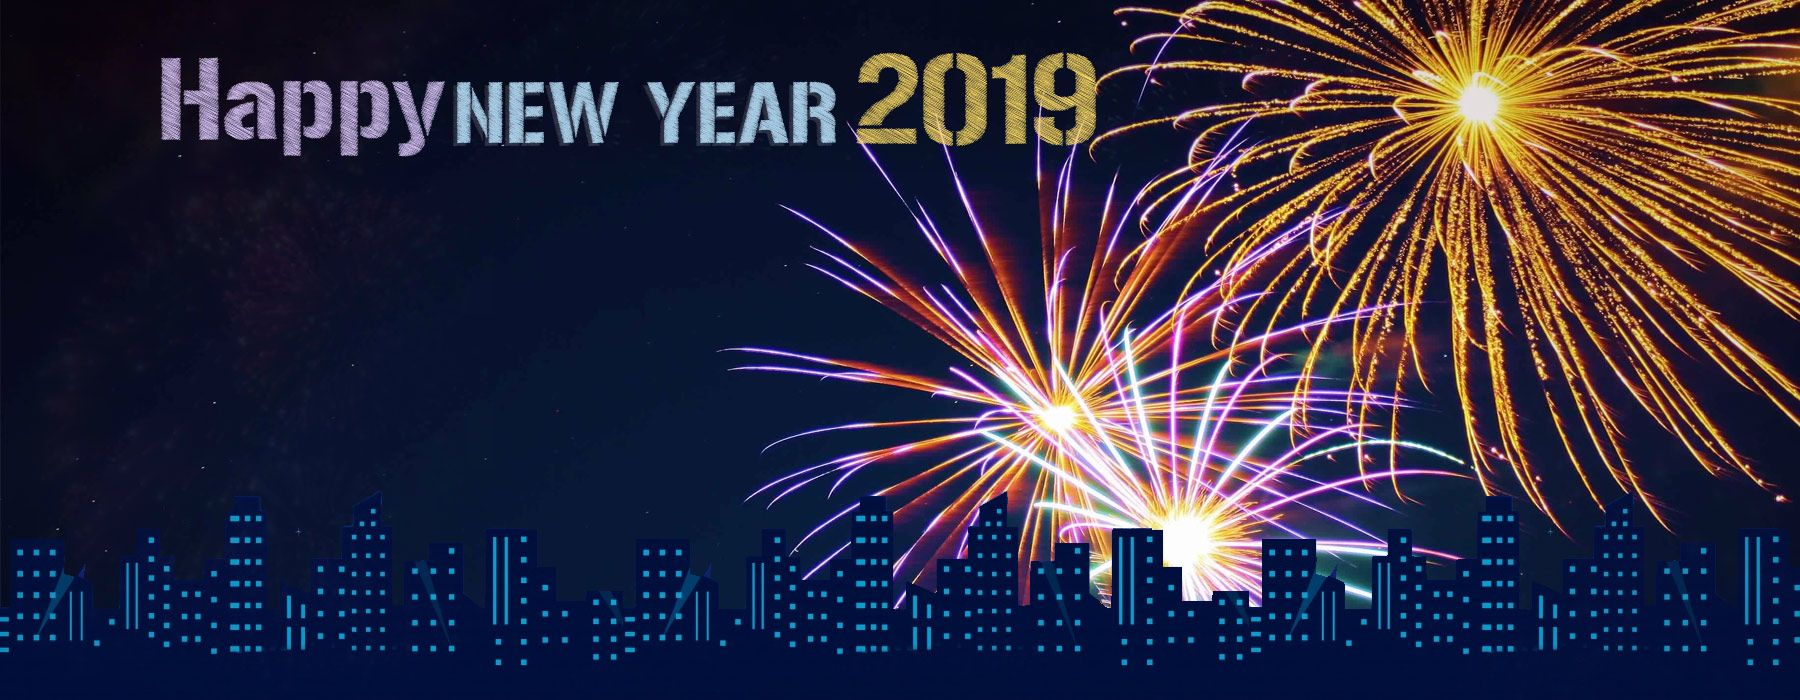 New Year Flight Offers Cheap Flights For New Year Eve 2021 Flight Offers Flight Deals Cheap Flights